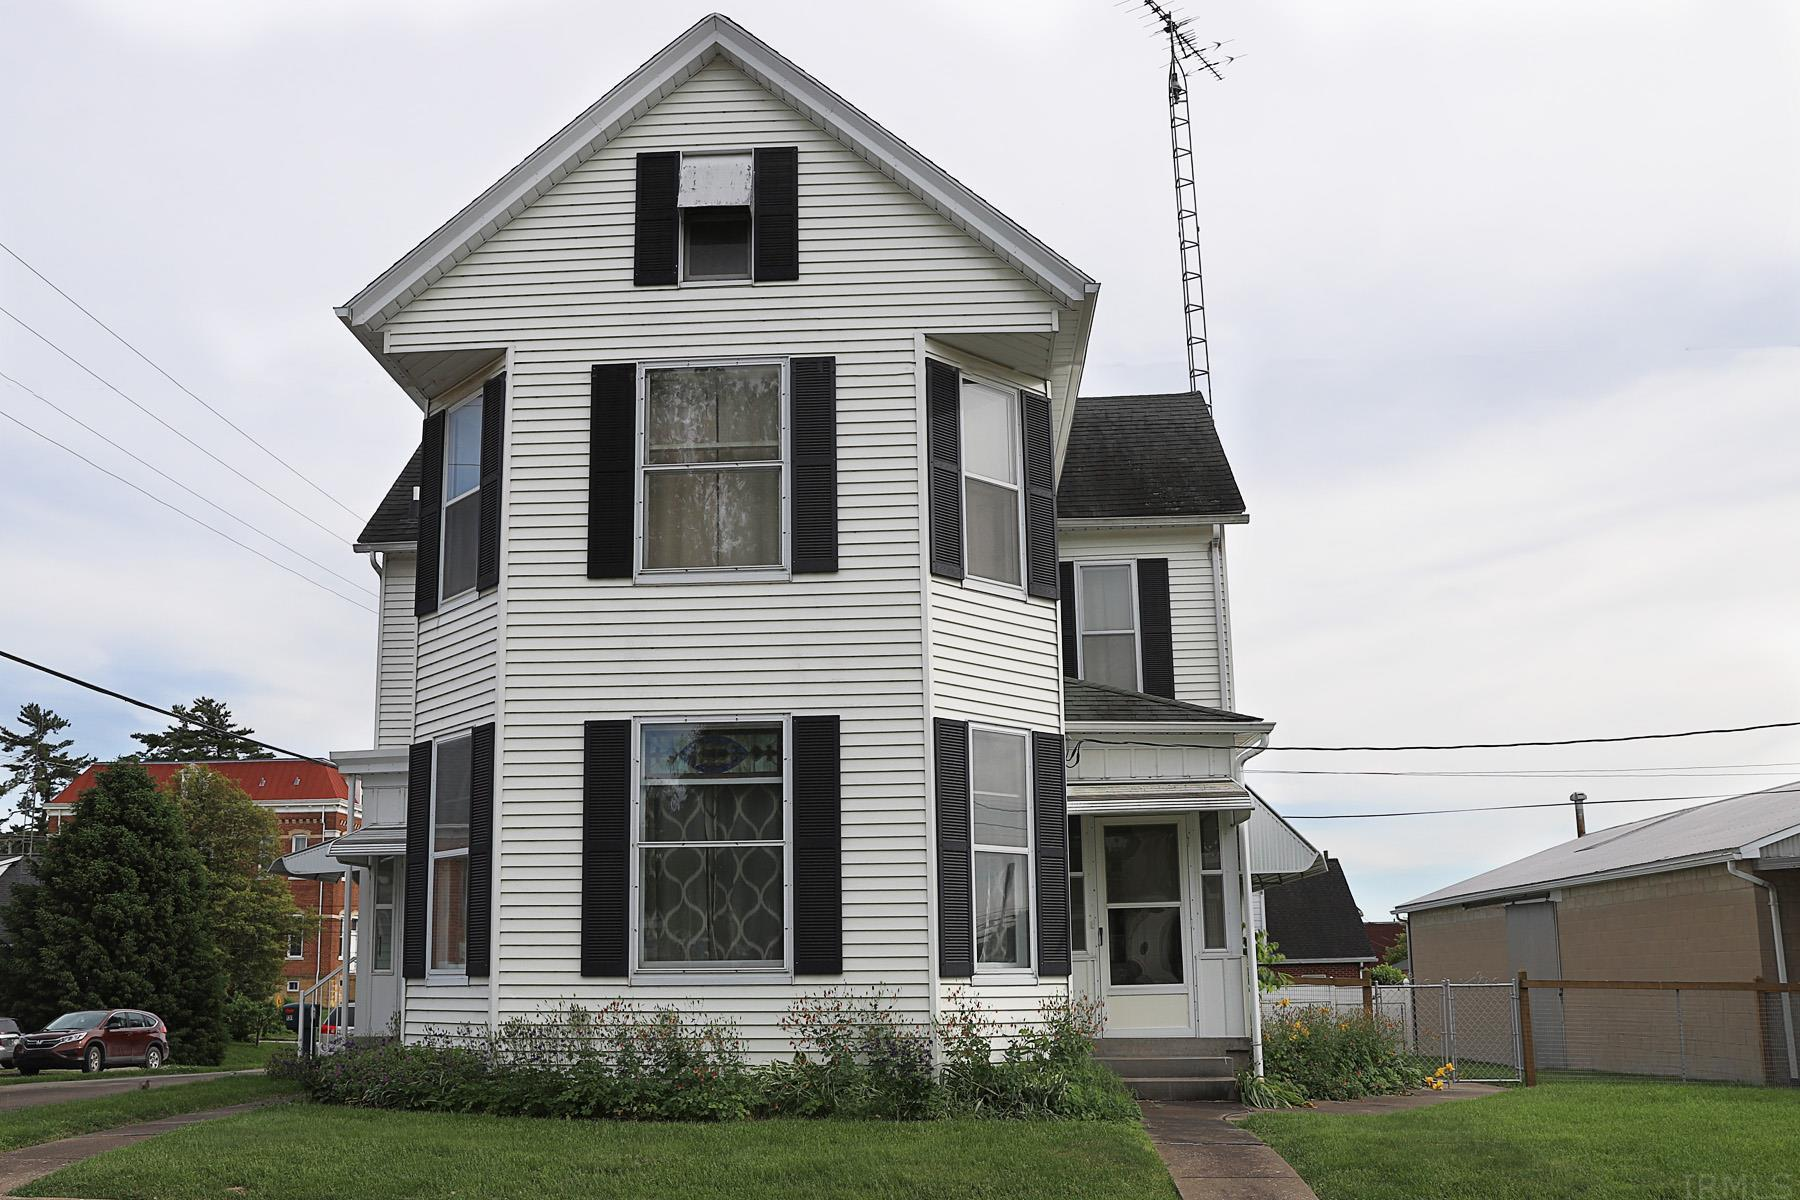 Beautiful Historic Home Located In Downtown Ferdinand.  Many Updates Have Been Done To The Home In The Past 5 Yrs. But The Charm And Character Has Been Preserved.  Remodeled Kitchen With All New Appliances, Updated Bathrooms, New Furnace, Air Conditioner And Duct Work All Replaced In 2015.  Featuring 1844 Finished Sq. Ft. Including 3/4 Bedrooms And 1 1/2 Baths.  Original Hardwood Floors And Beautiful Woodwork Throughout, Oversized Carport/Detached Garage, 1-Car Detached Garage, Fenced Backyard And A Great Location Within Walking Distance To The Park, YMCA And Library Are Just A Few Of The Outstanding Features Of This Home.